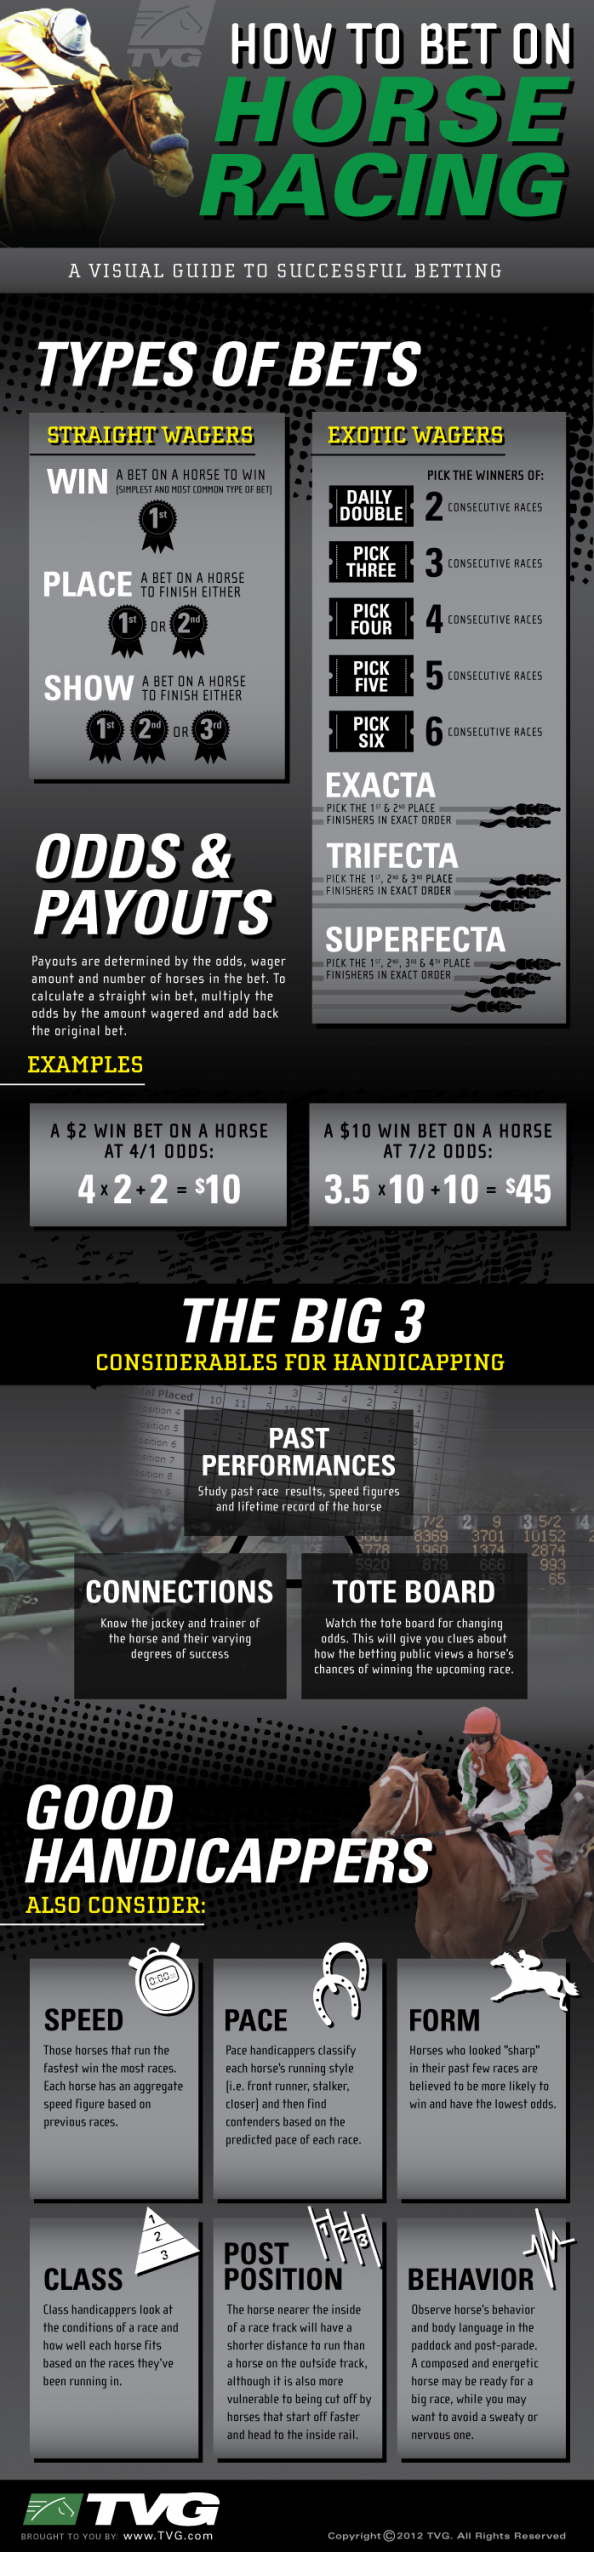 A Visual Guide to Placing Bets on Horse Races Infographic